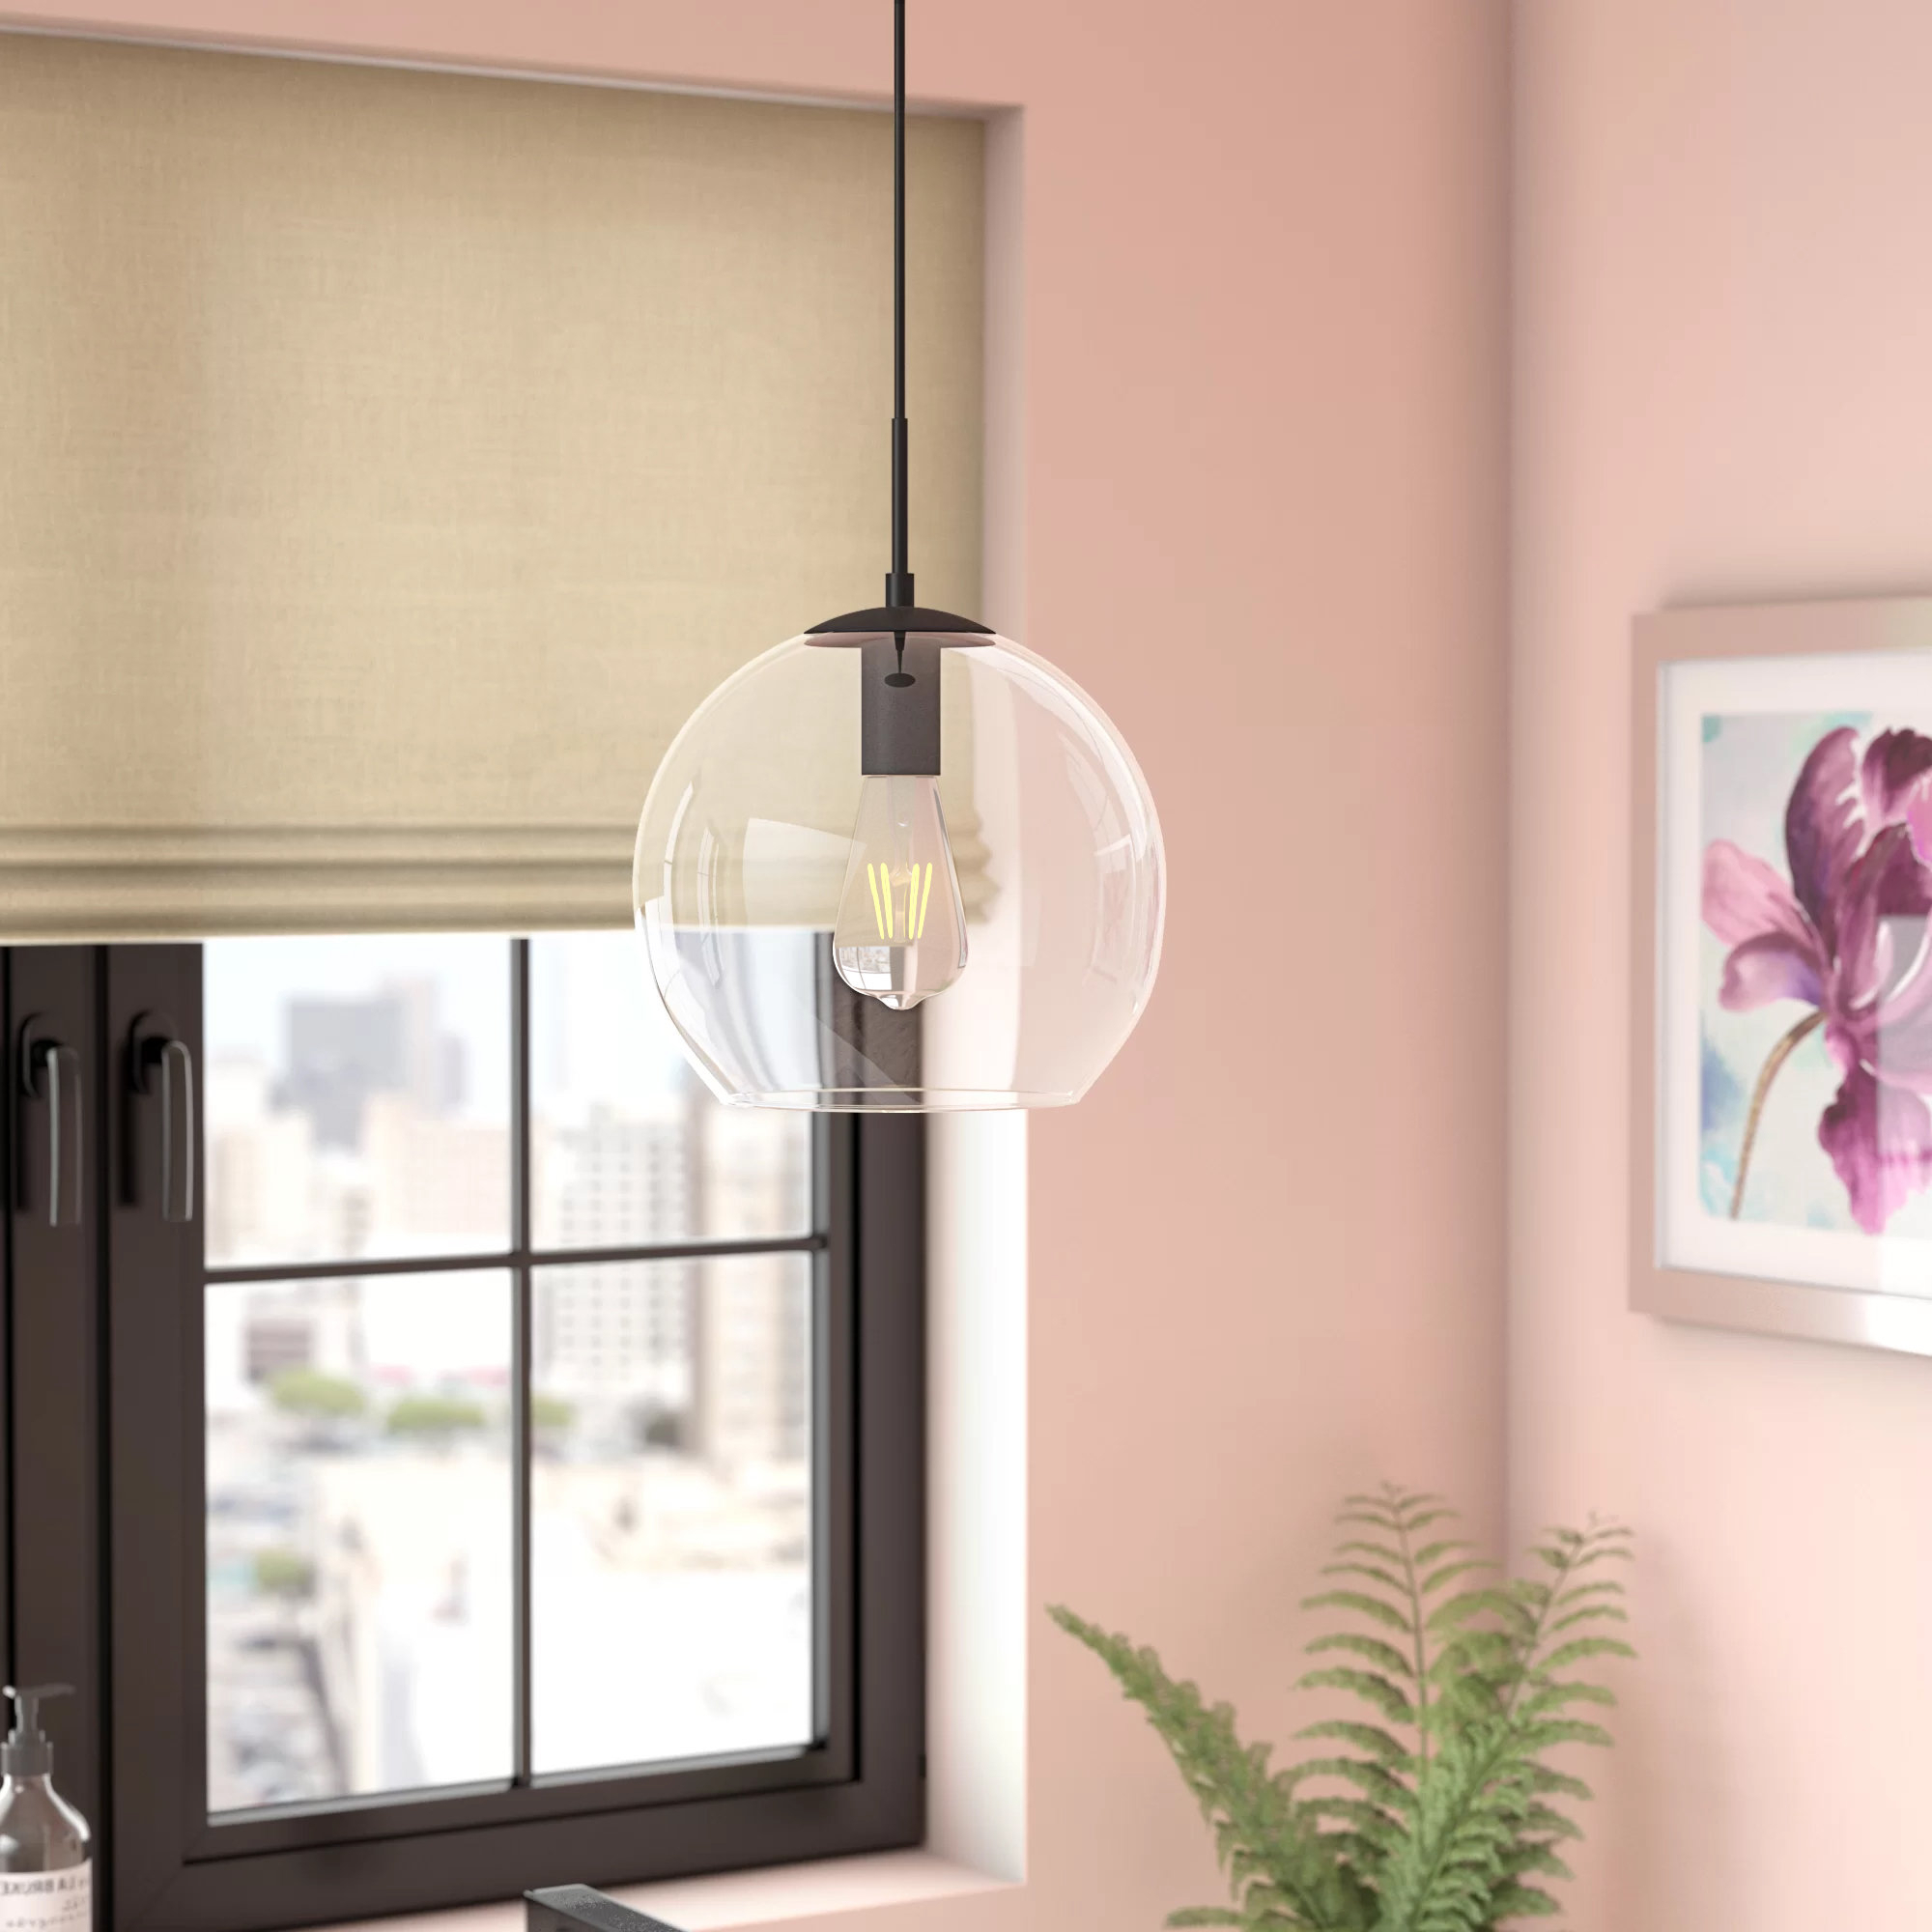 Fashionable 12 Inch Pendant Light (View 6 of 20)